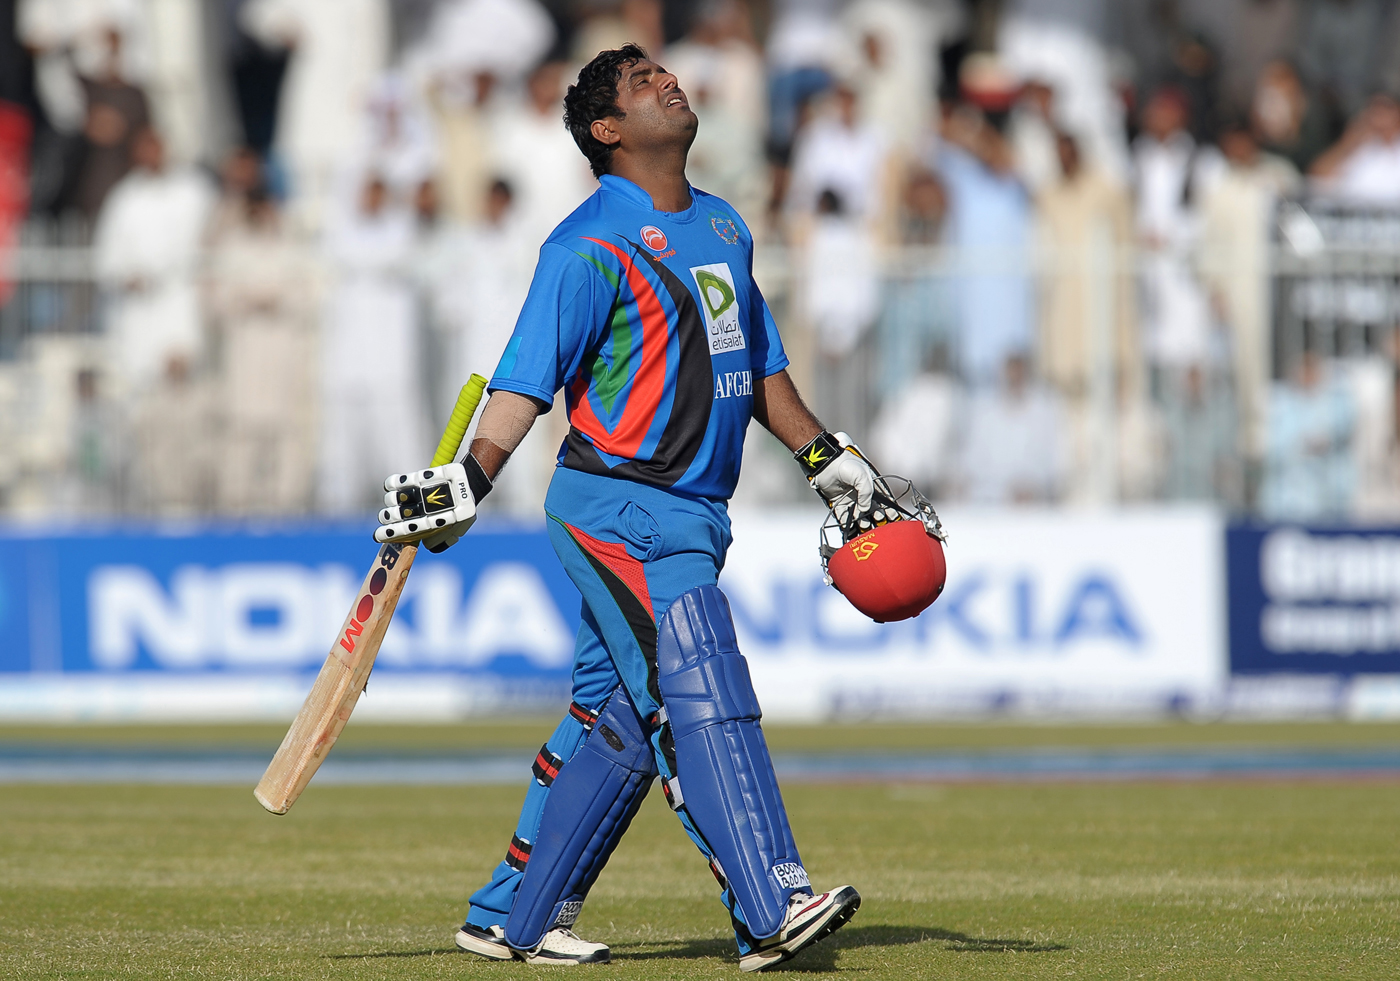 Shahzad: six and out